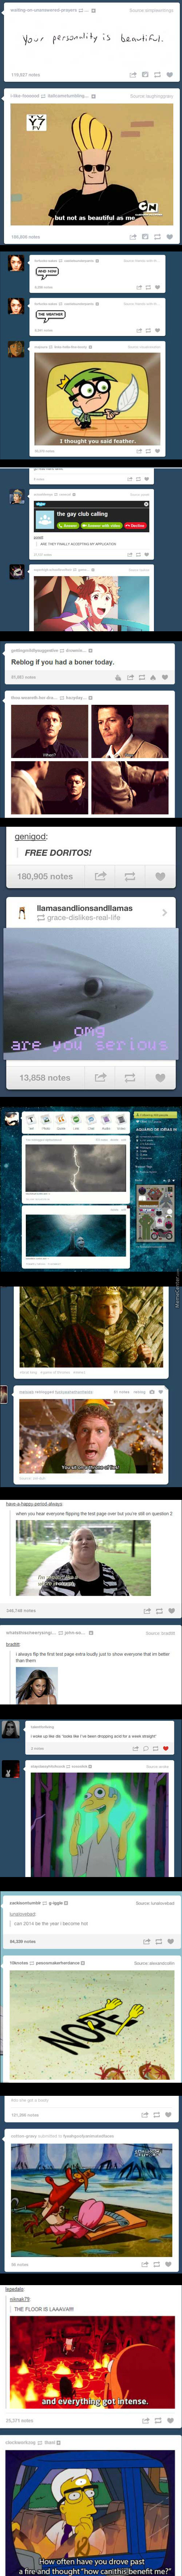 Awesome Tumblr Conicidences